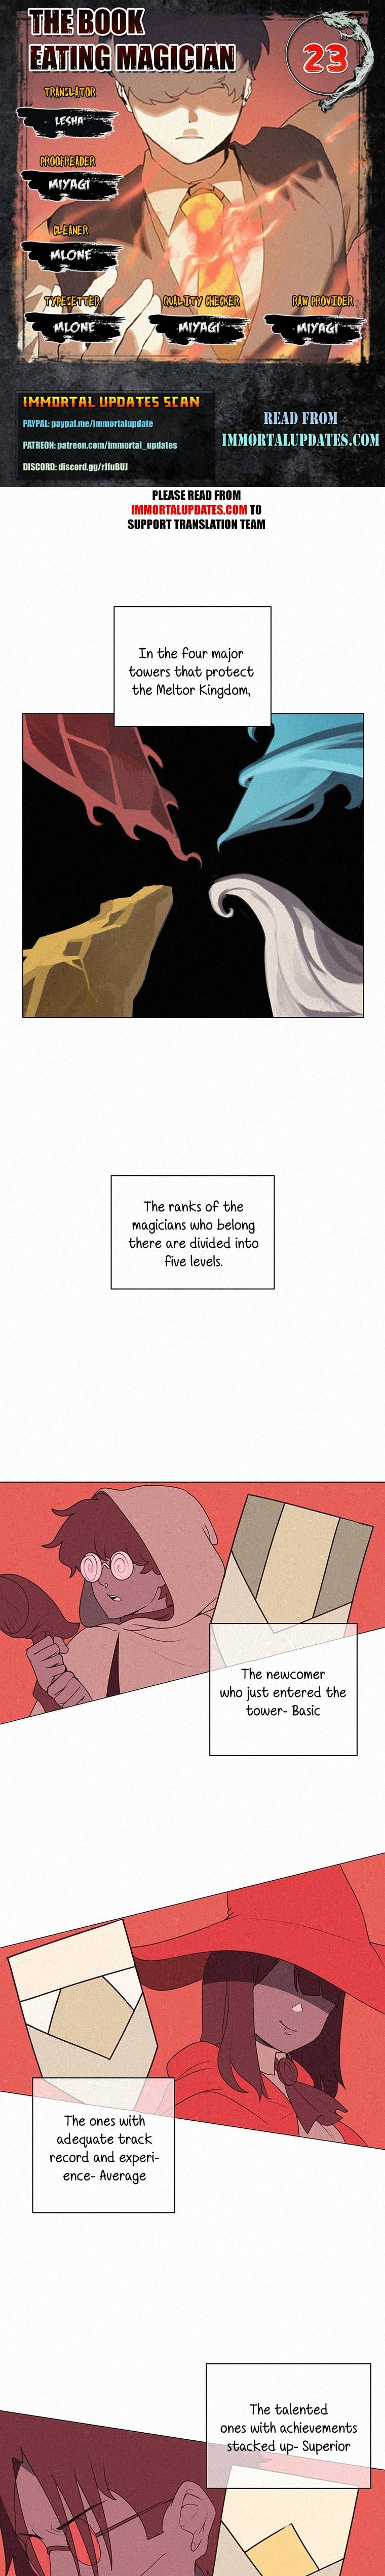 The Book Eating Magician - chapter 23 - #1